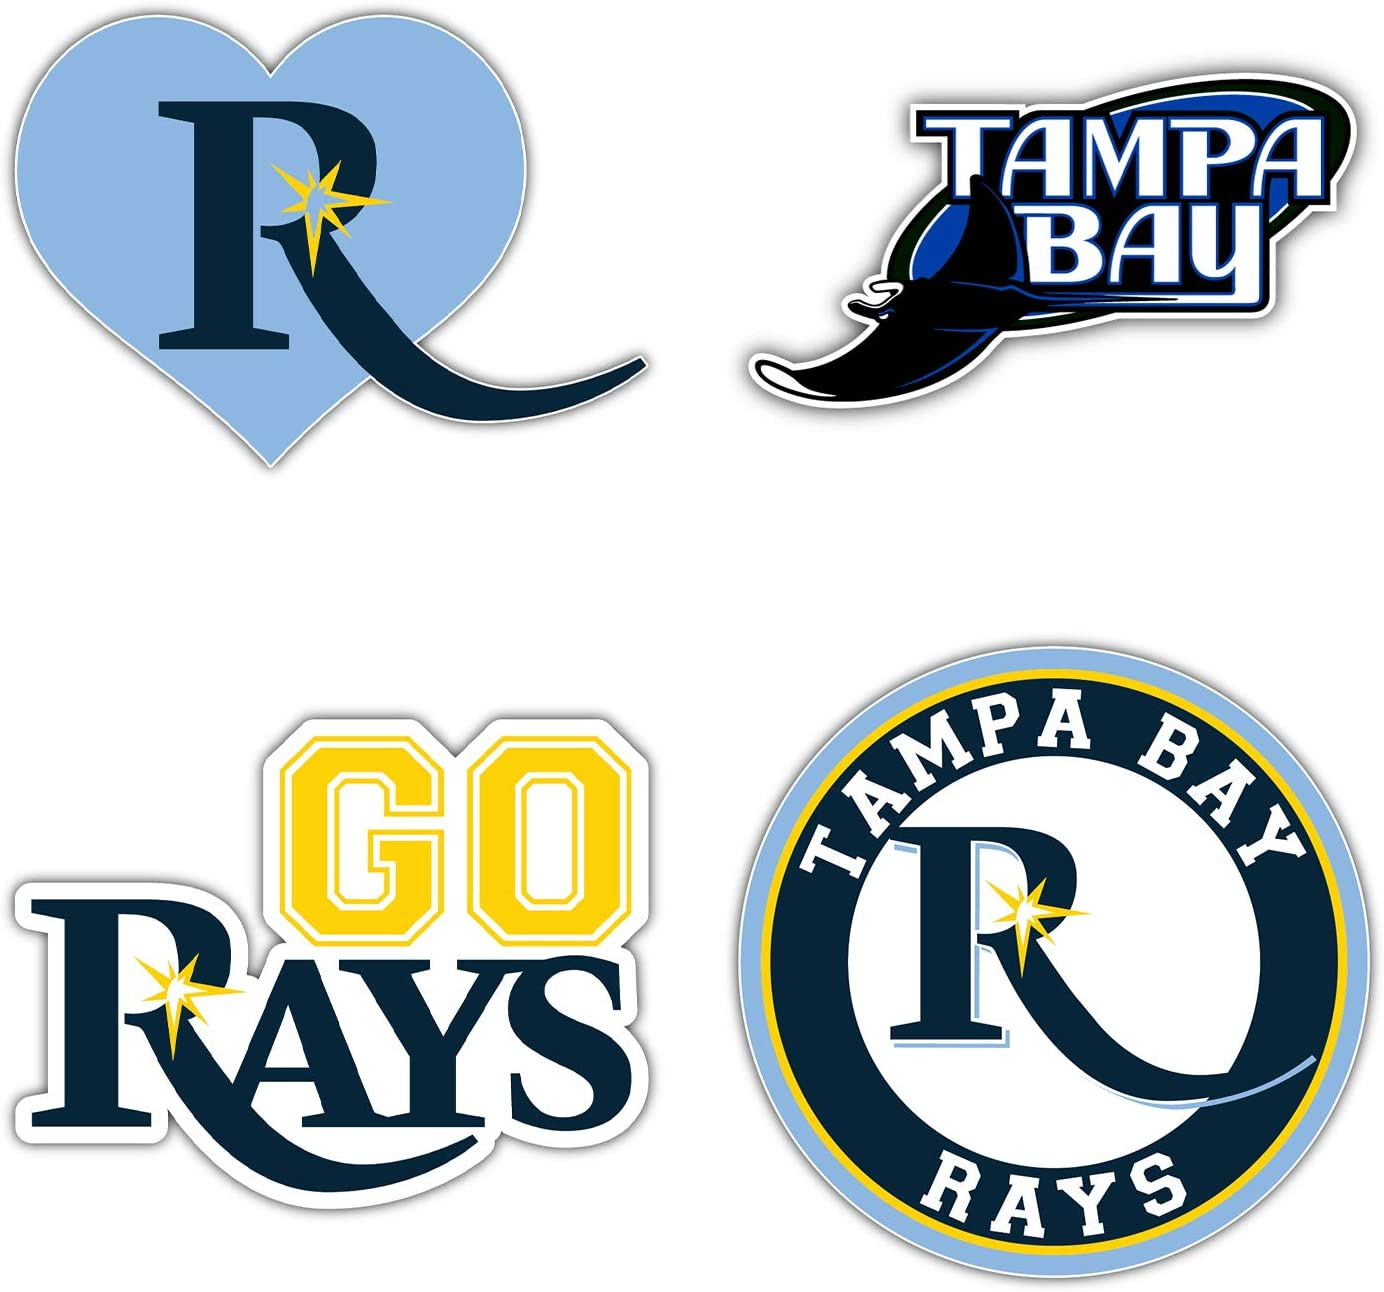 "Tampa Bay City Ray Baseball Die-Cut Sticker - Set of 4 Decal 5"" Longer Side"